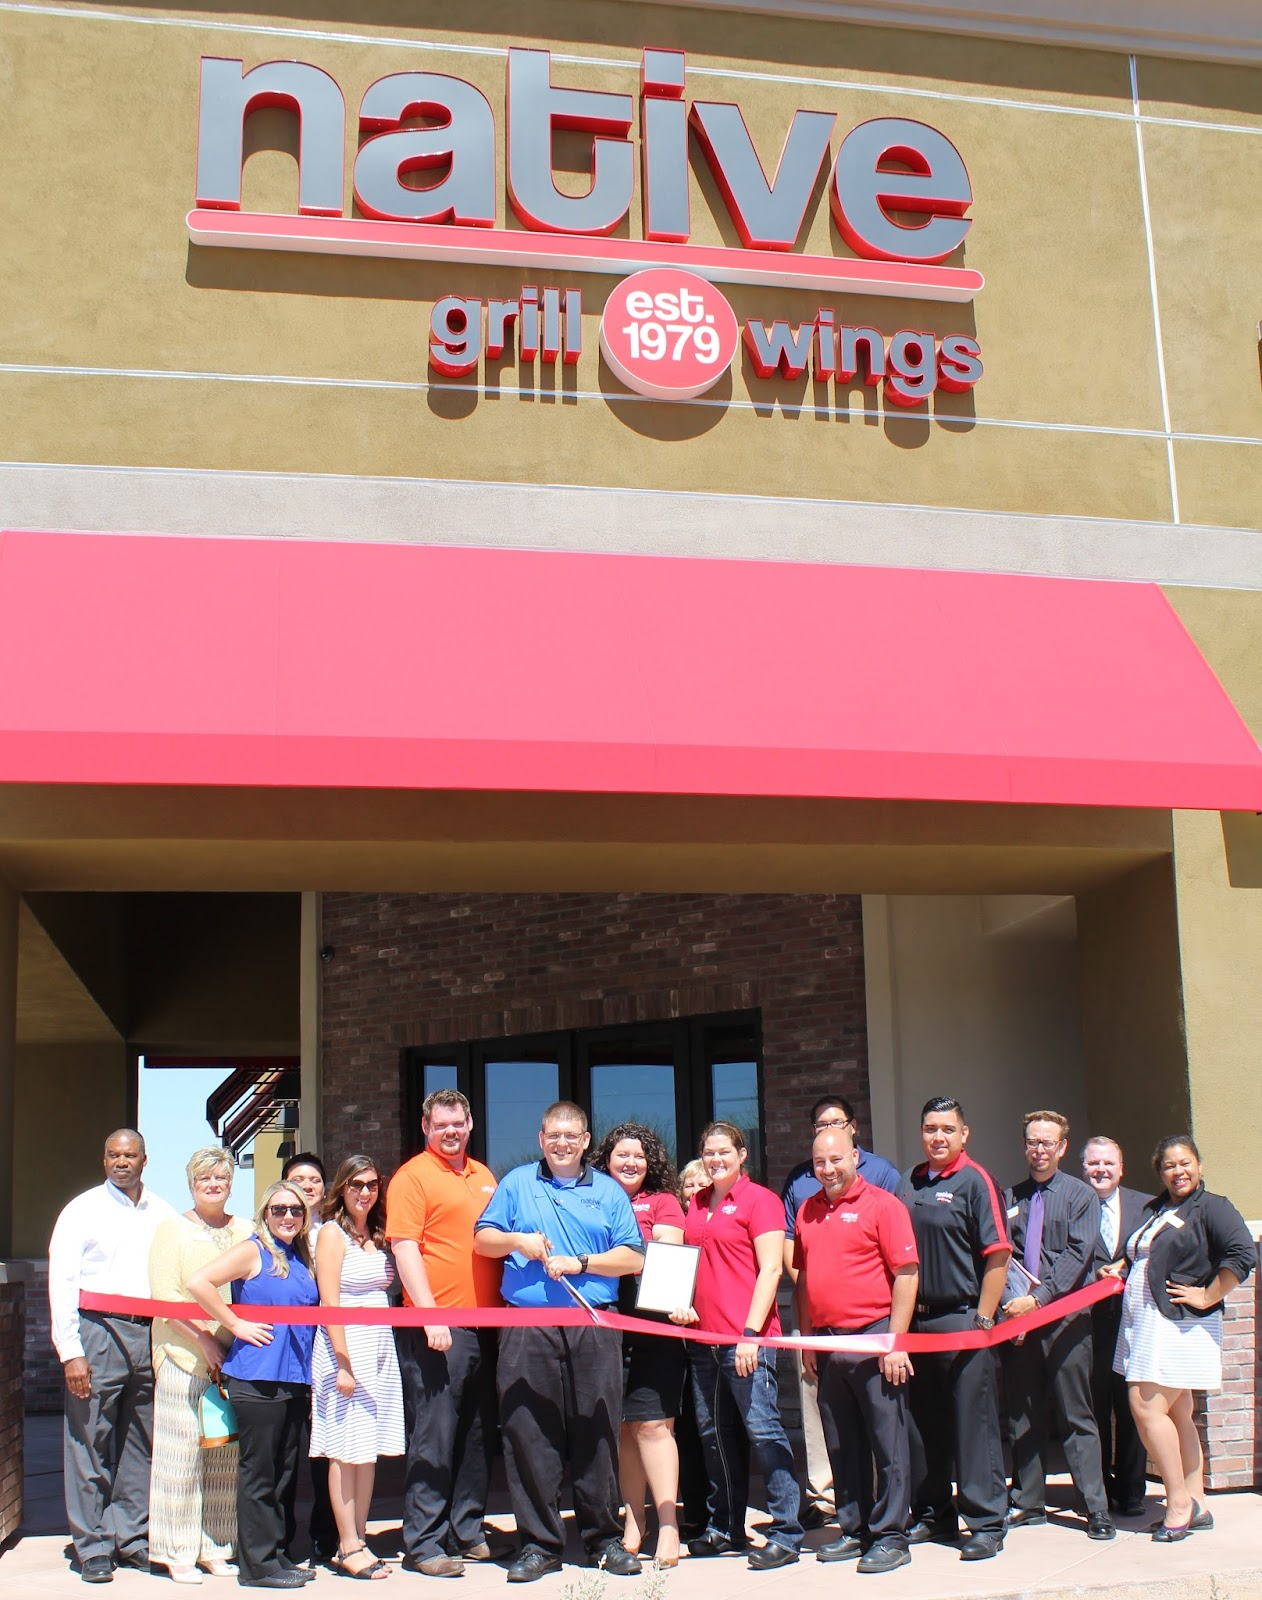 Native Grill and Wings is opening up their third location in Tucson, located in the Spectrum Plaza across from Harkins Theaters. During each opening, Native chooses a local charity to support with a charity night in which all proceeds are donated to the charity. Blessings in a Backpack supporting Bloom Elementary School will receive the donation.  Native Grill and Wings 5421 S. Calle Santa Cruz, 85706 889-5198